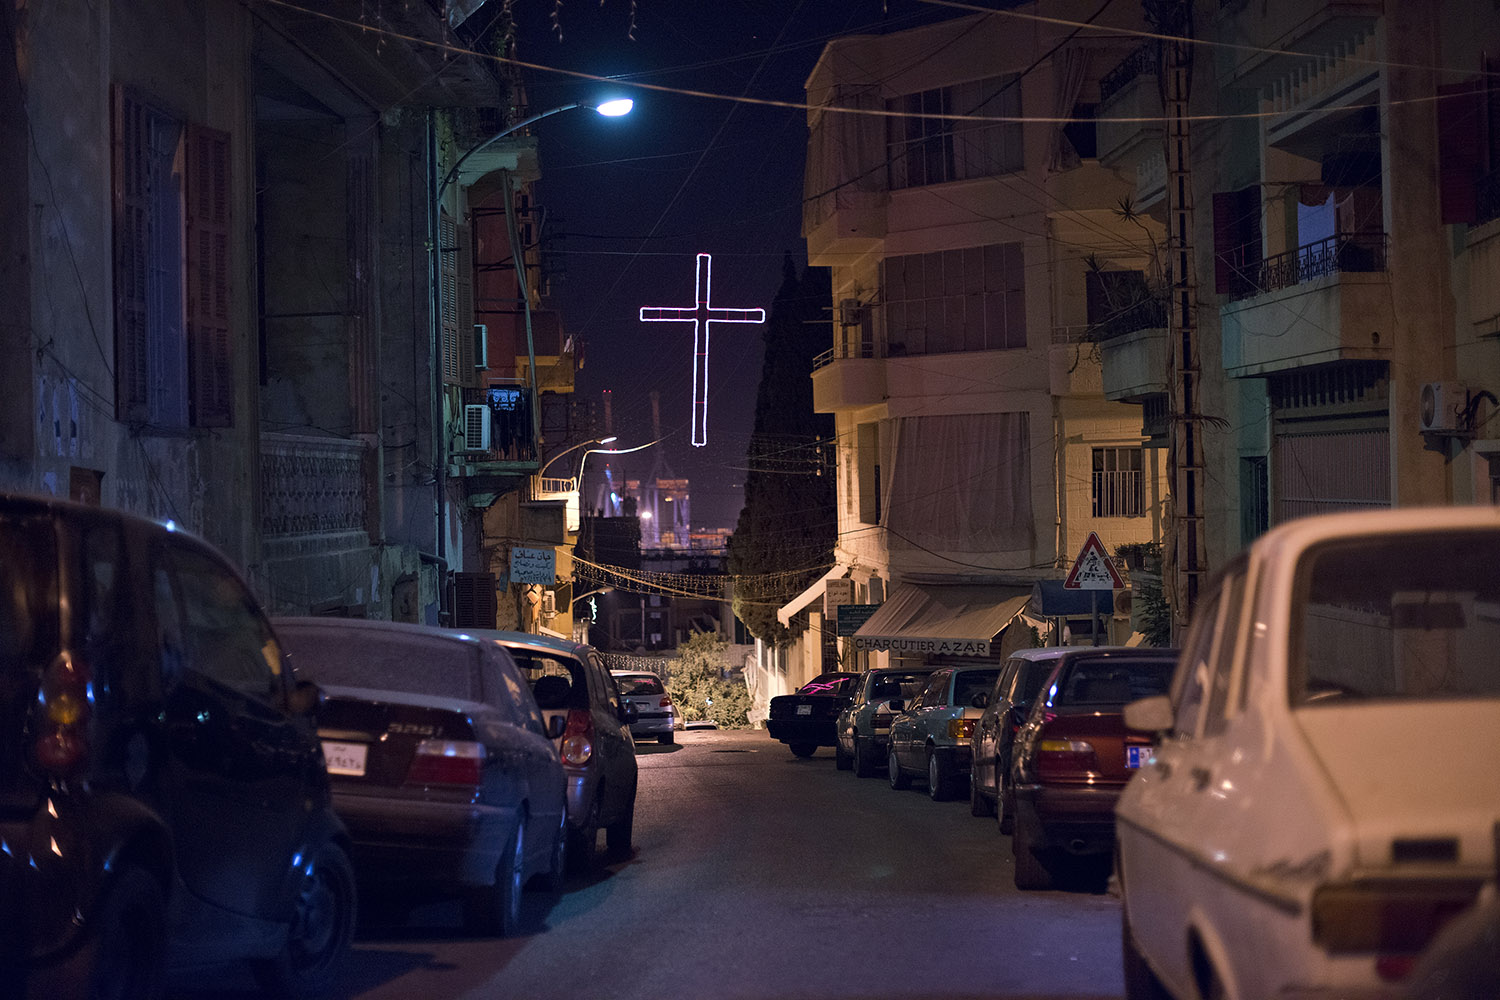 A cross is seen hanging between residential buildings in Beirut, October 6, 2012.